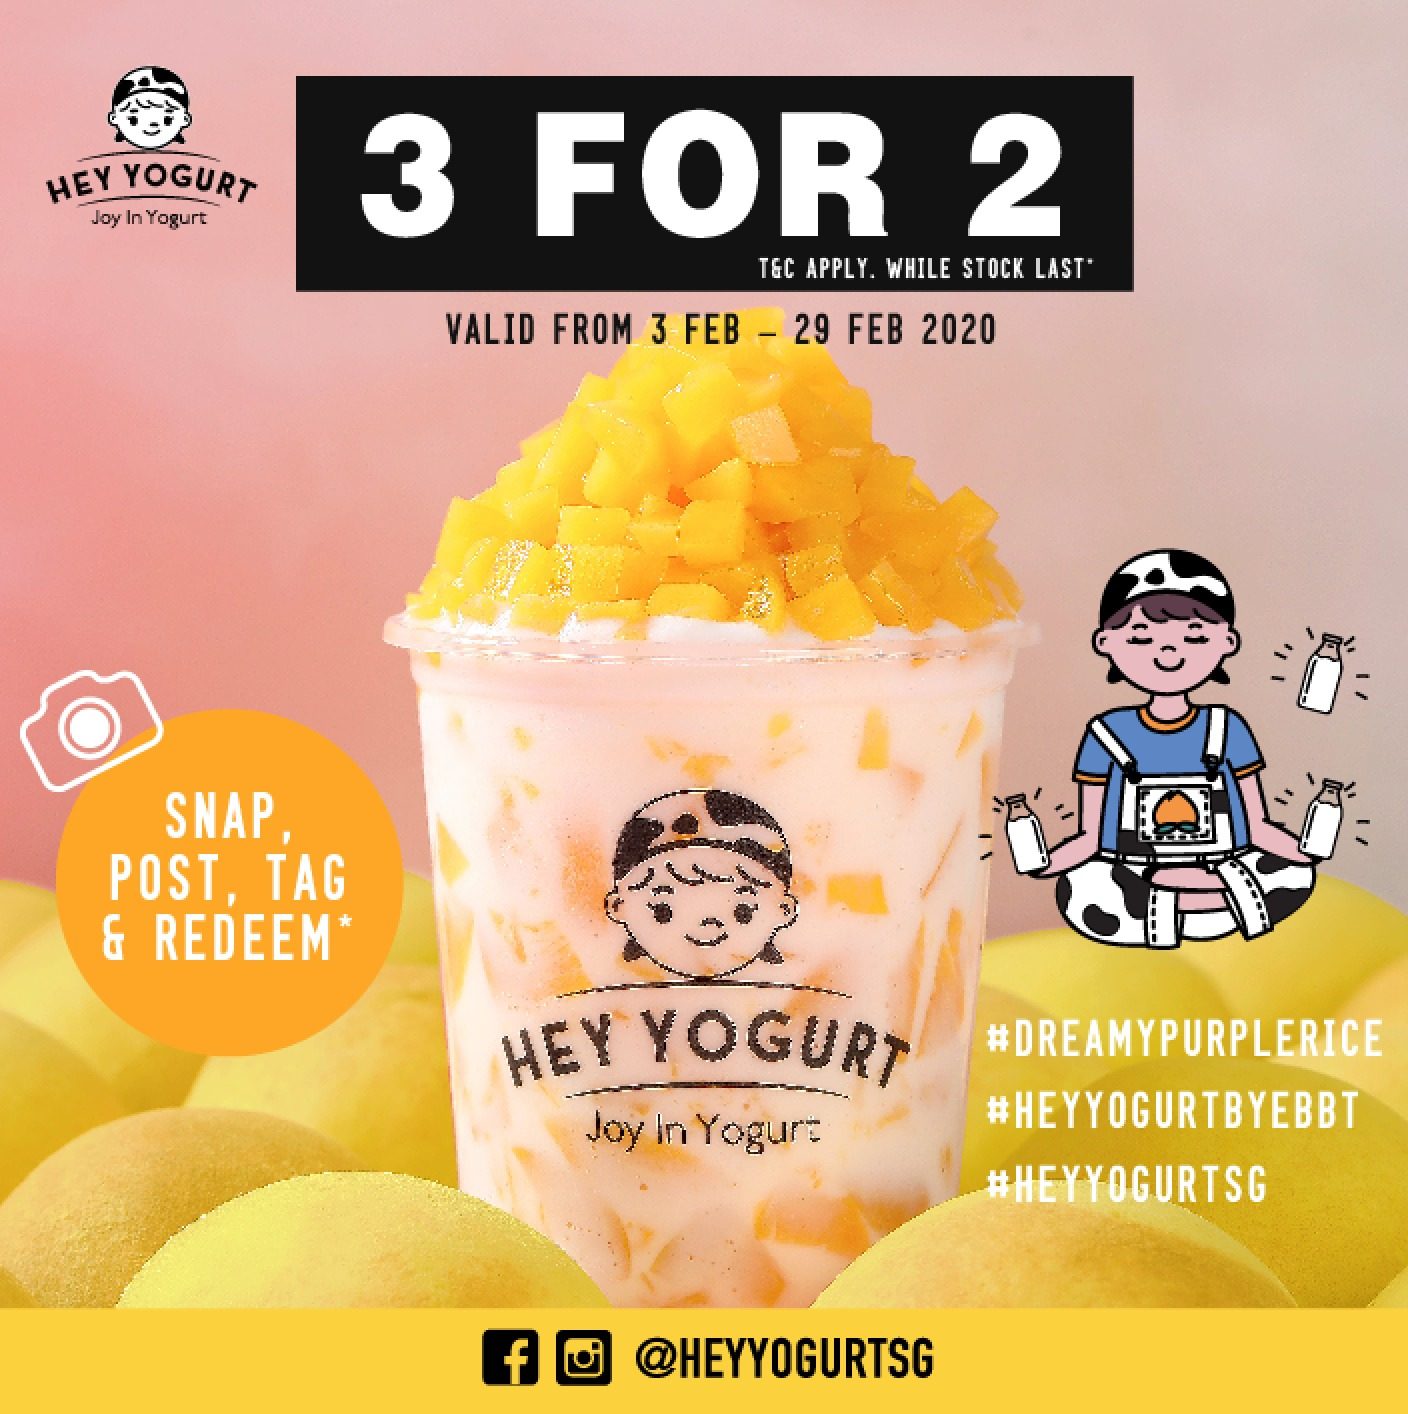 Hey Yogurt Offers 3-for-2 from 3 Feb - 29 Feb 2020 At Jurong Point | Why Not Deals & Promotions